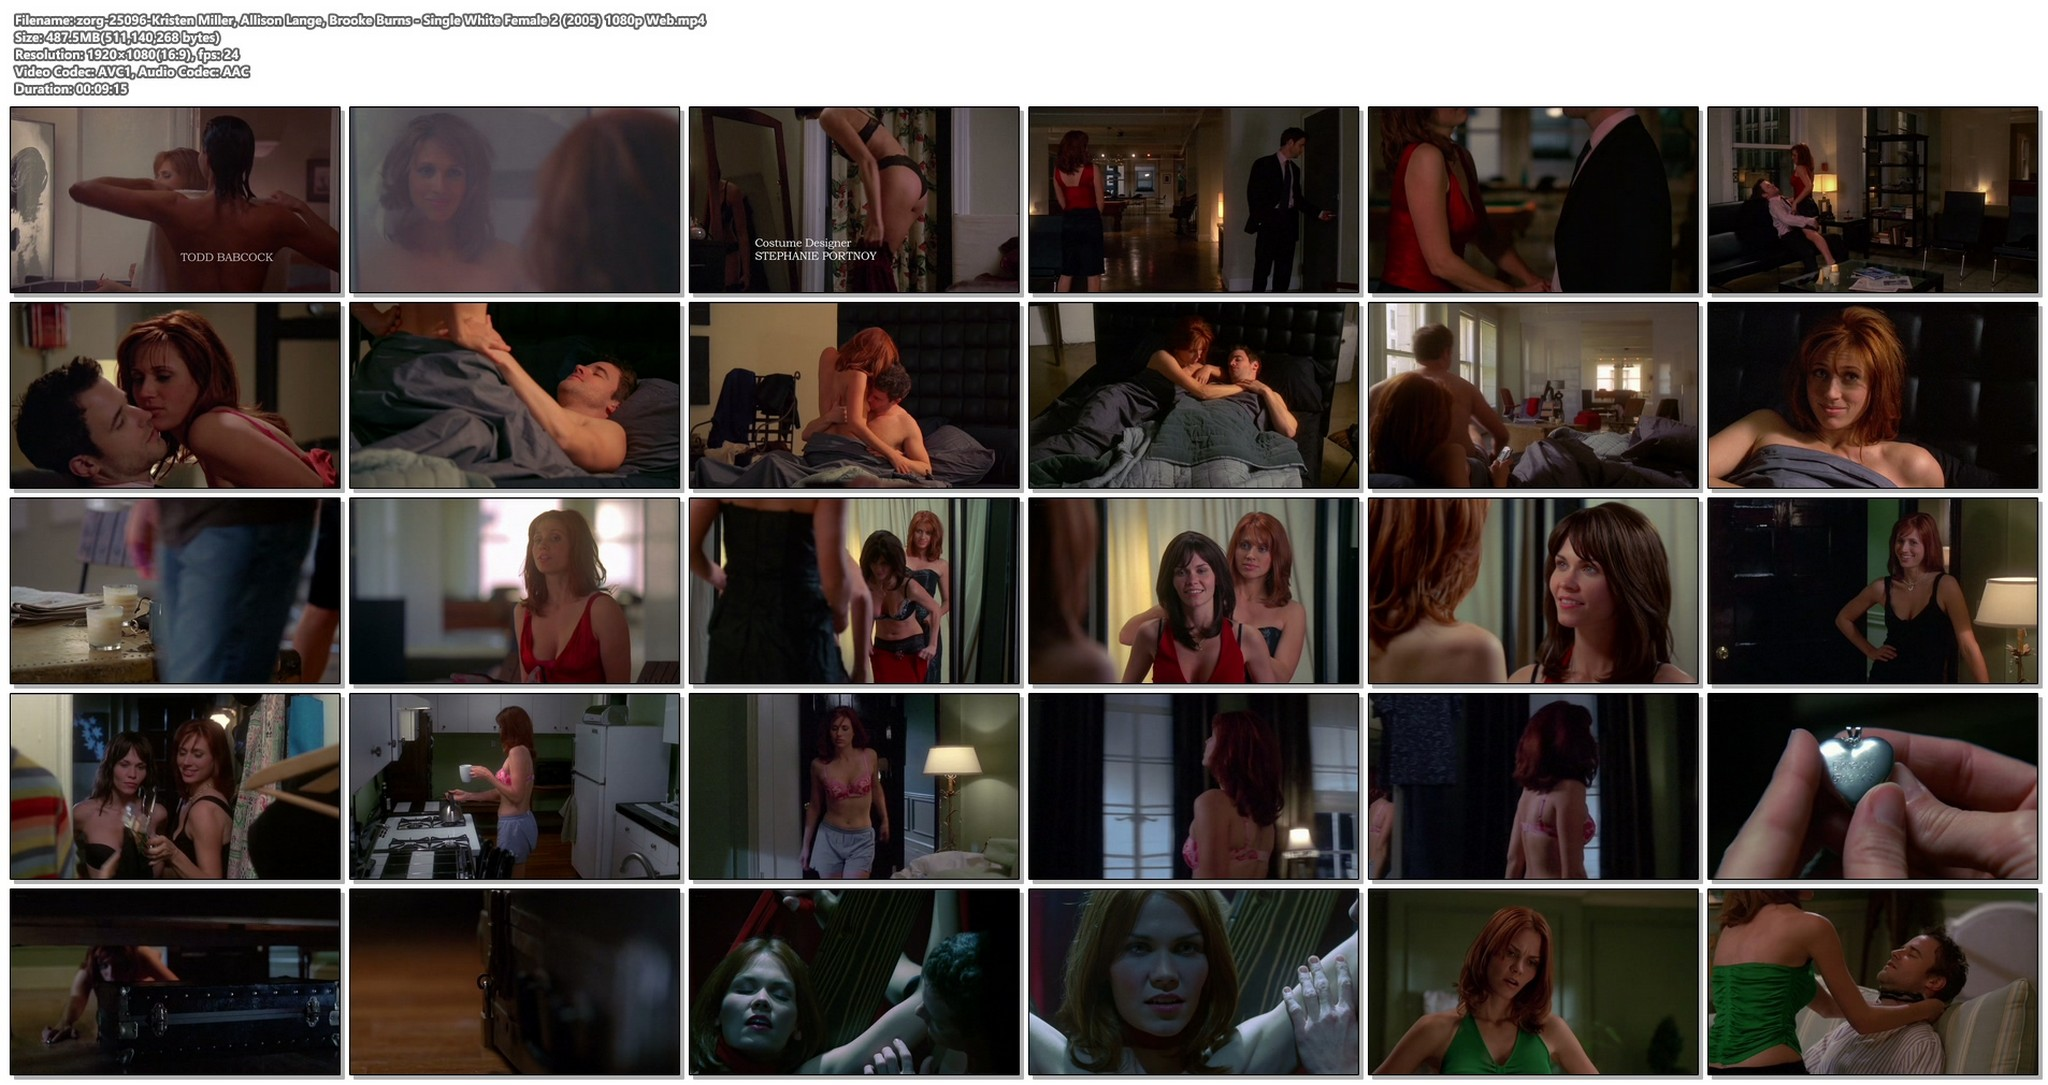 Kristen Miller hot and sex Allison Lange Brooke Burns sexy and some sex too Single White Female 2 2005 1080p Web 15